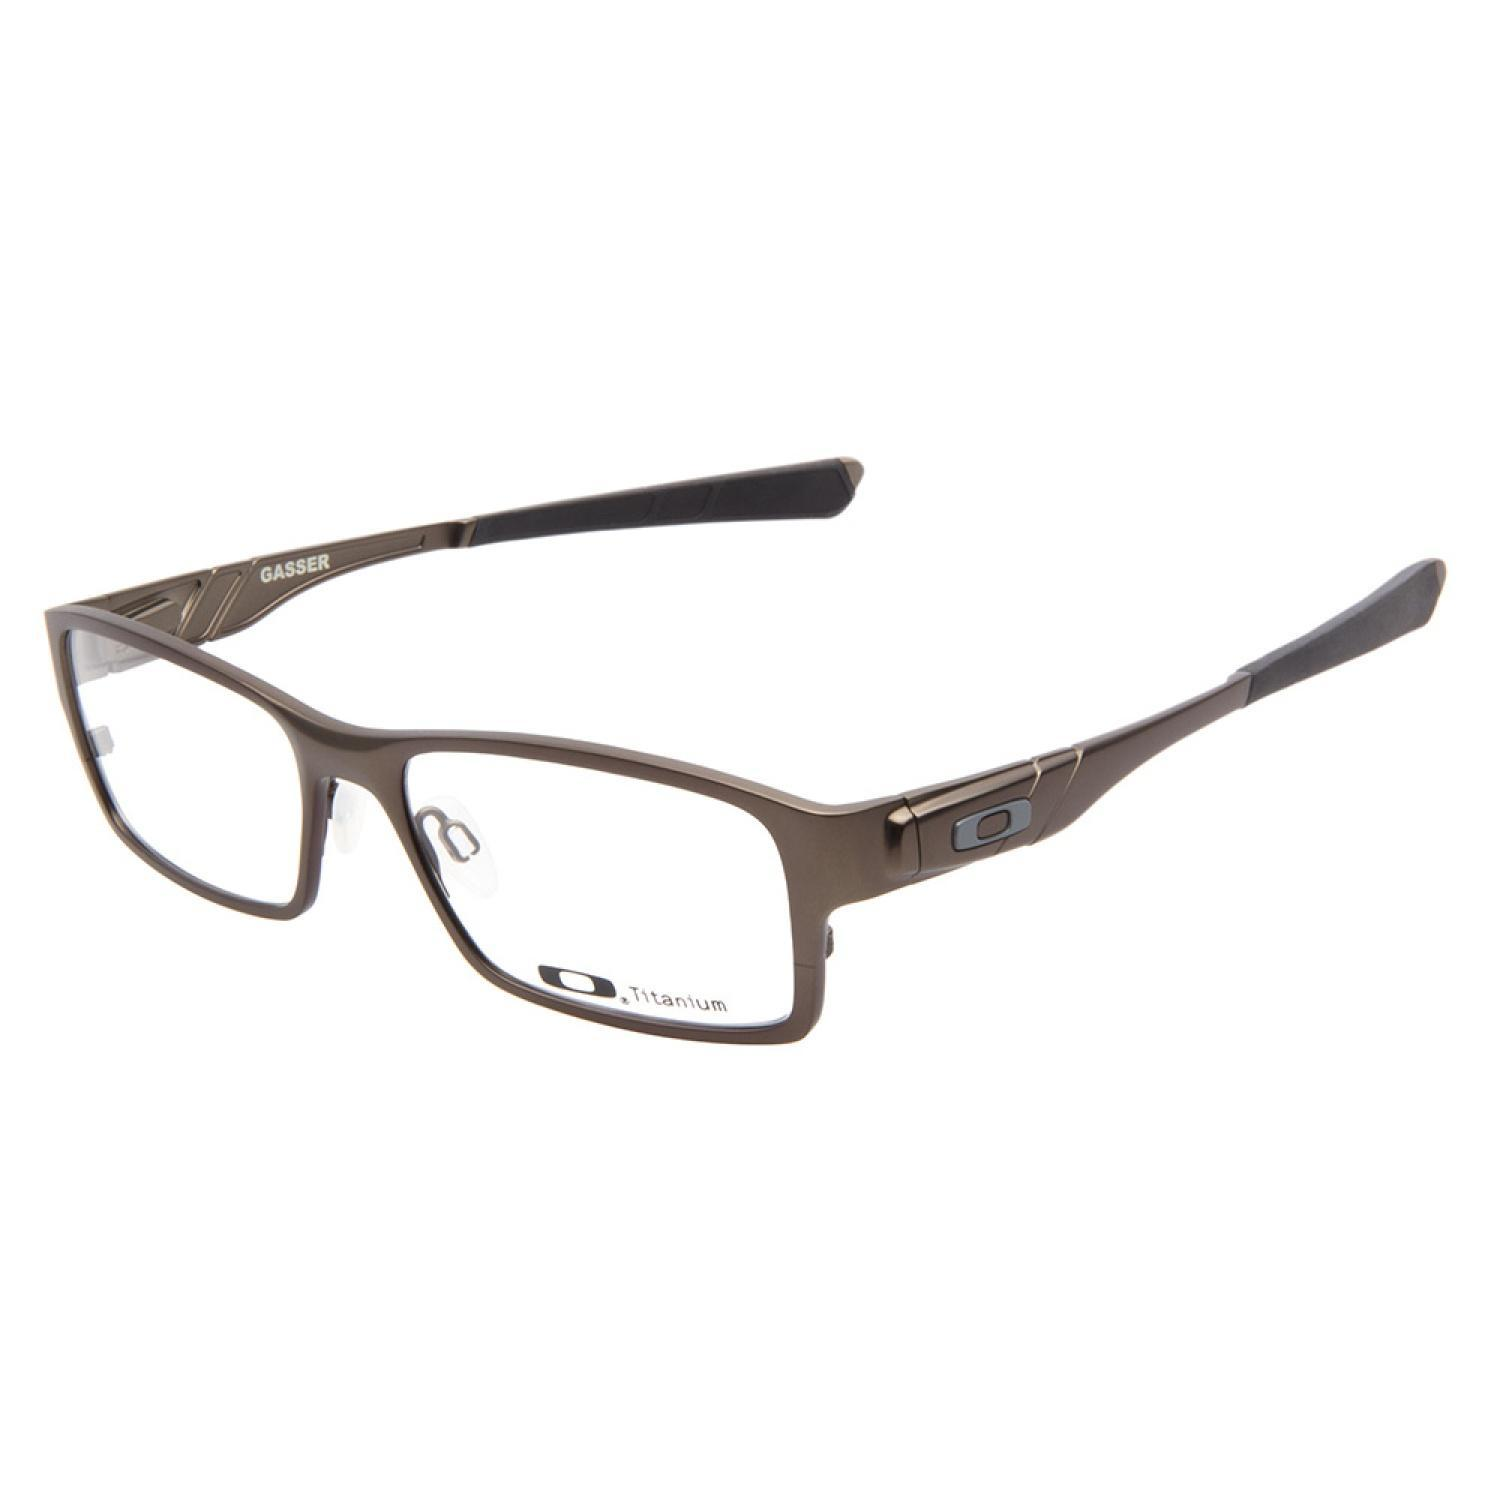 348f2f0911 Oakley Titanium Prescription Glasses « Heritage Malta